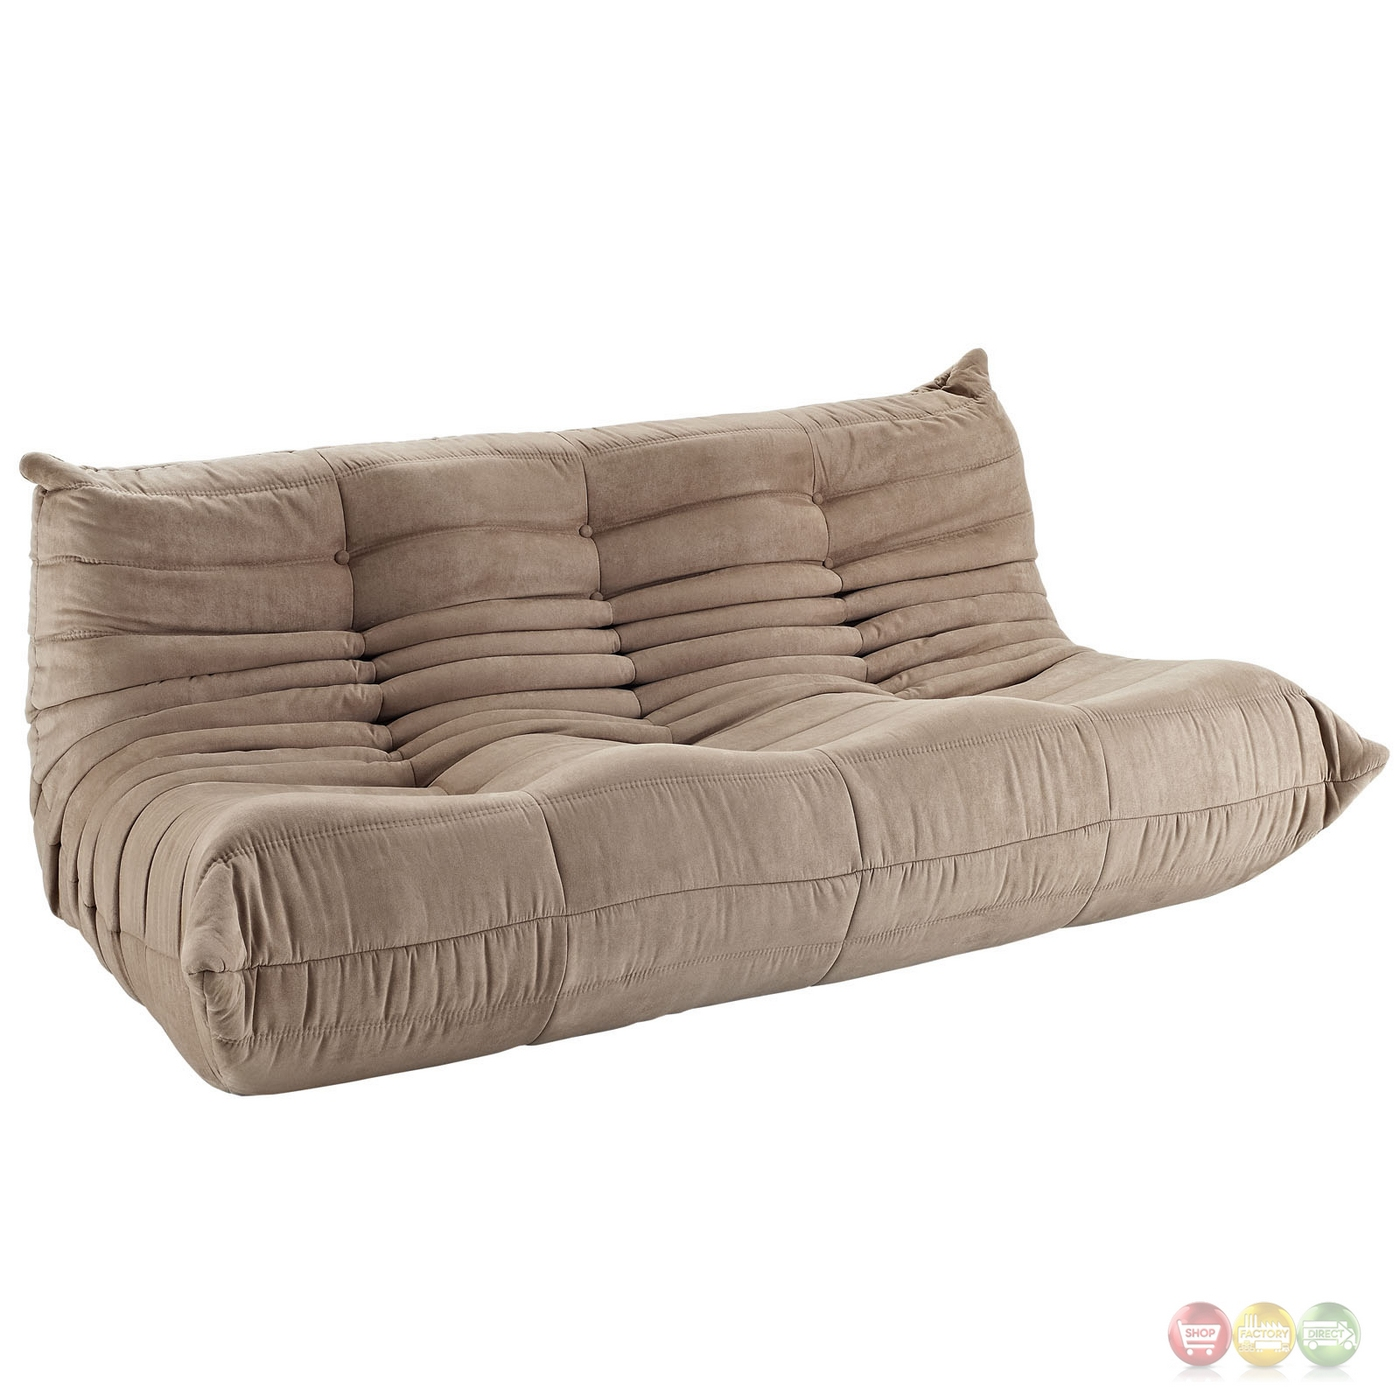 Wave Runner Contemporary Bean Bag Style Upholstered Sofa